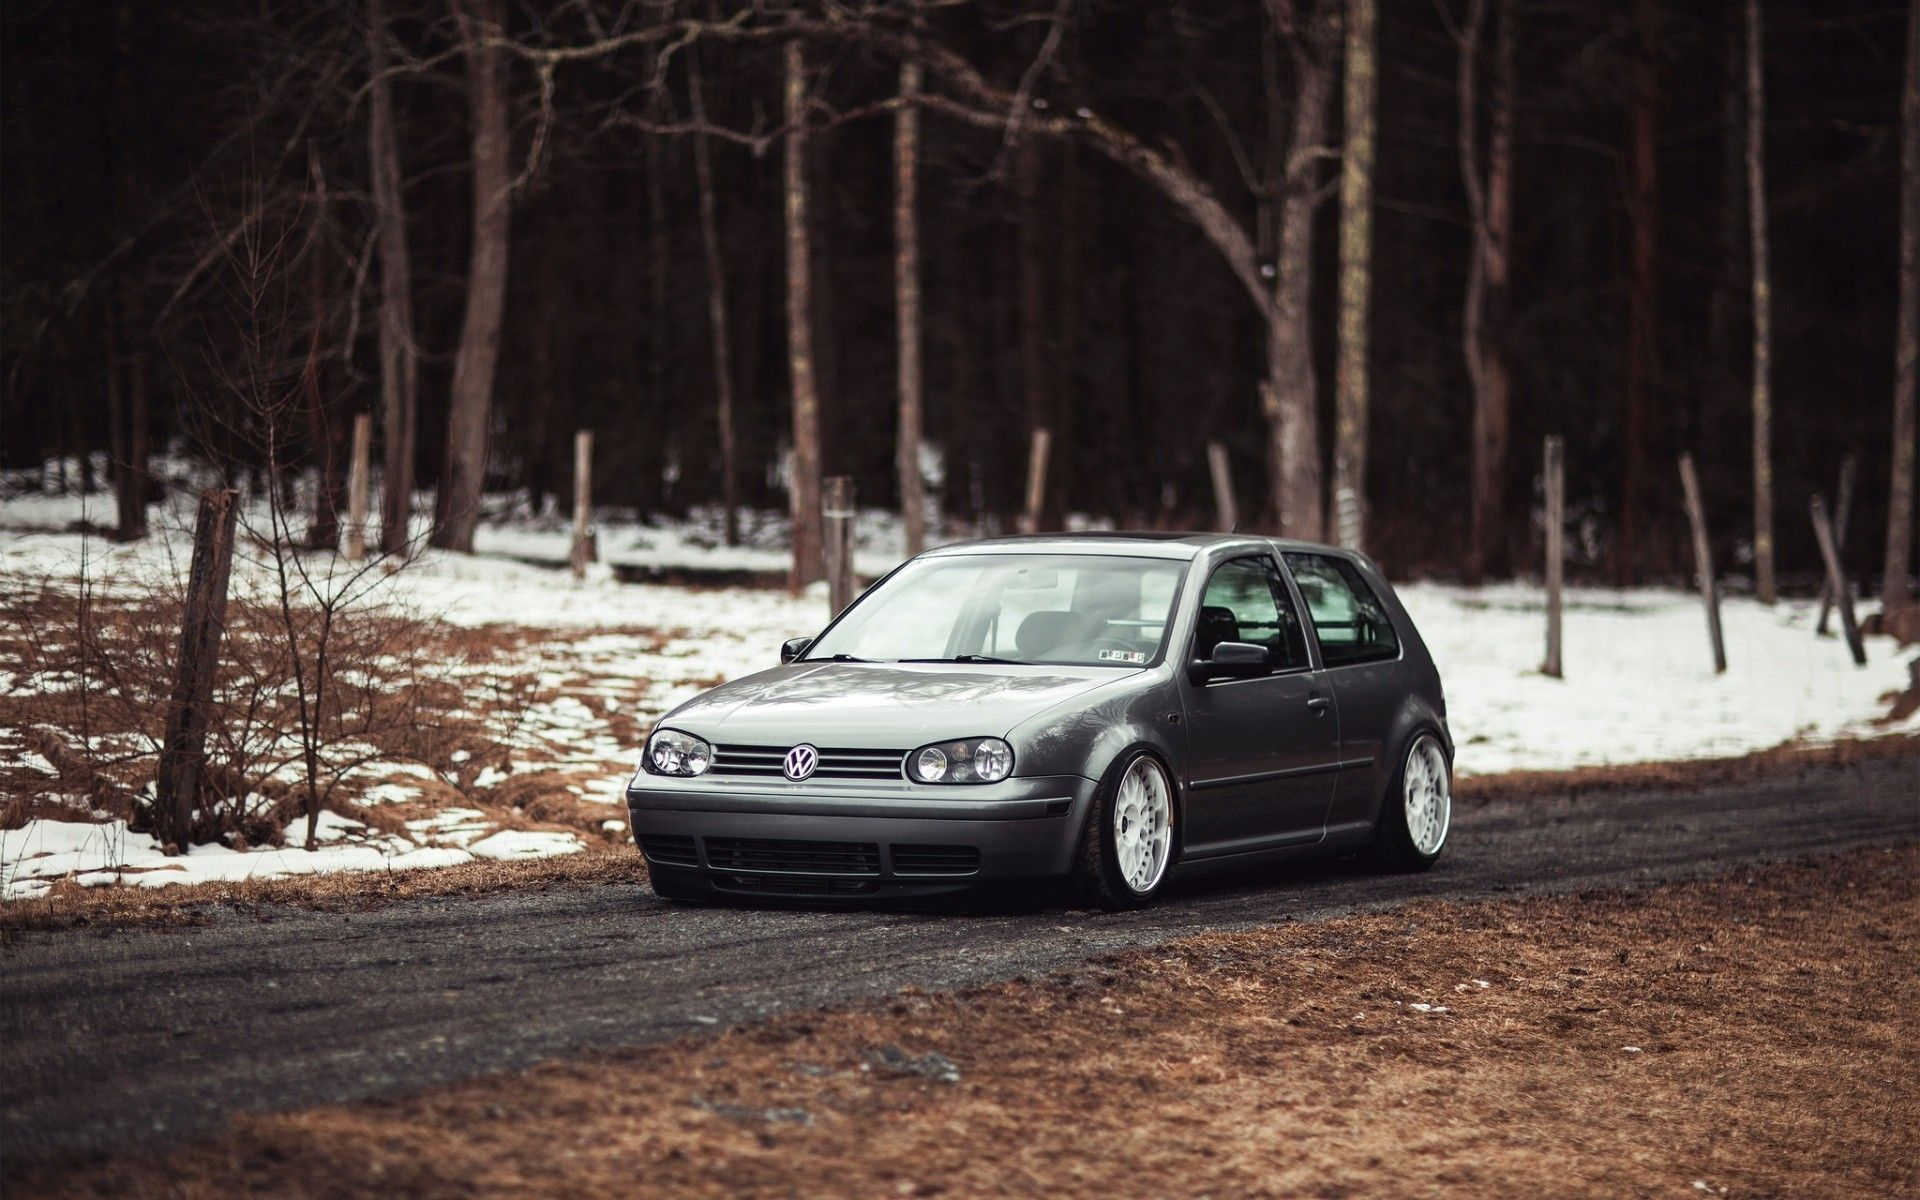 mkiv golf iv car stance volkswagen gti wallpaper [ 1920 x 1200 Pixel ]